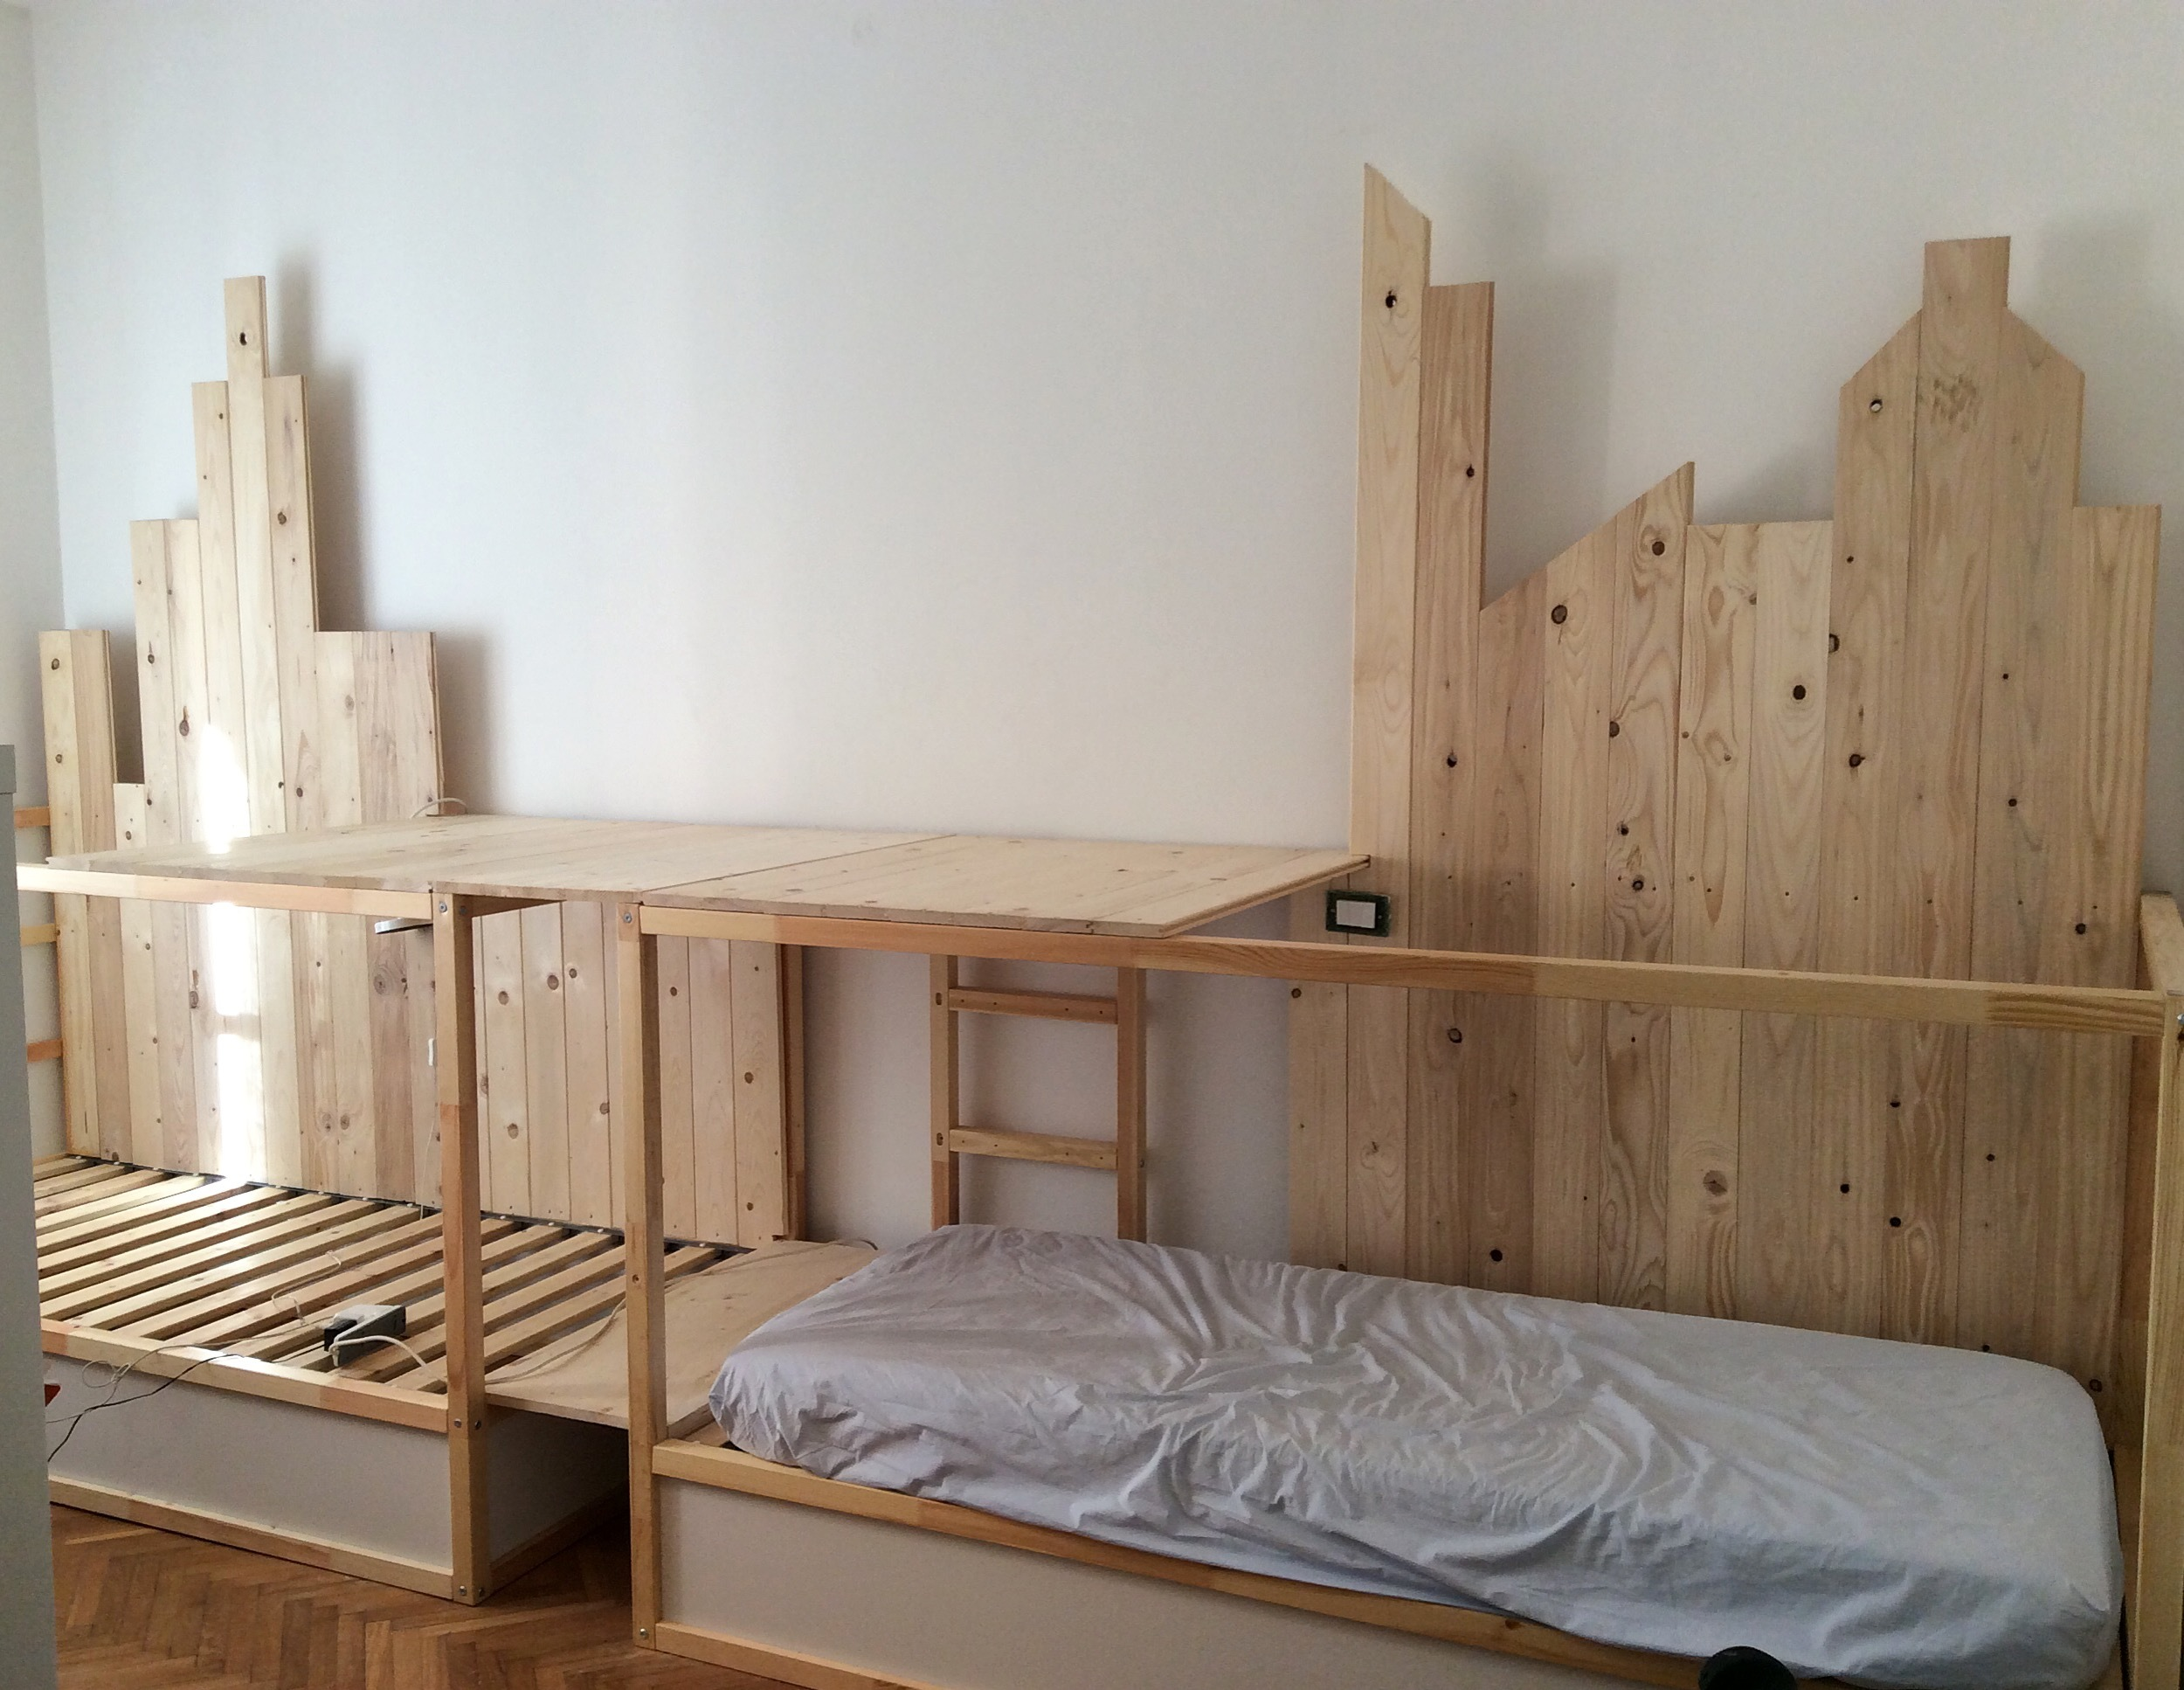 Ikea kura hack triple bunk bed mommo design Ikea hacking